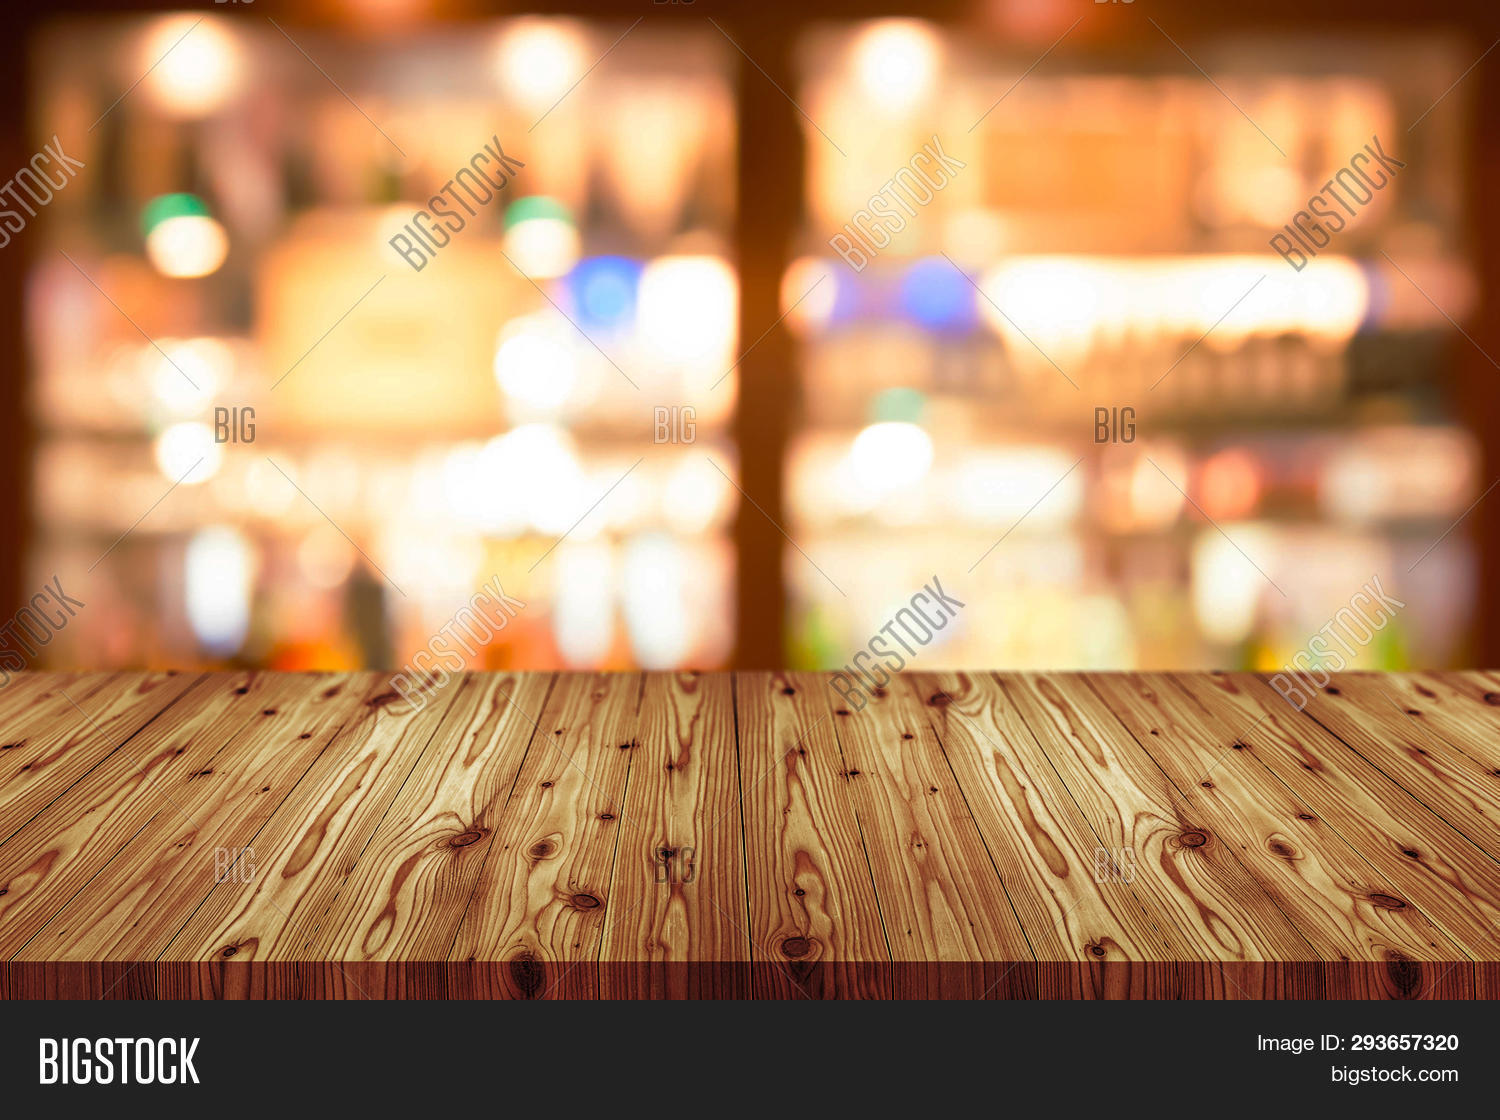 Strange Empty Wooden Table Top Image Photo Free Trial Bigstock Home Interior And Landscaping Pimpapssignezvosmurscom